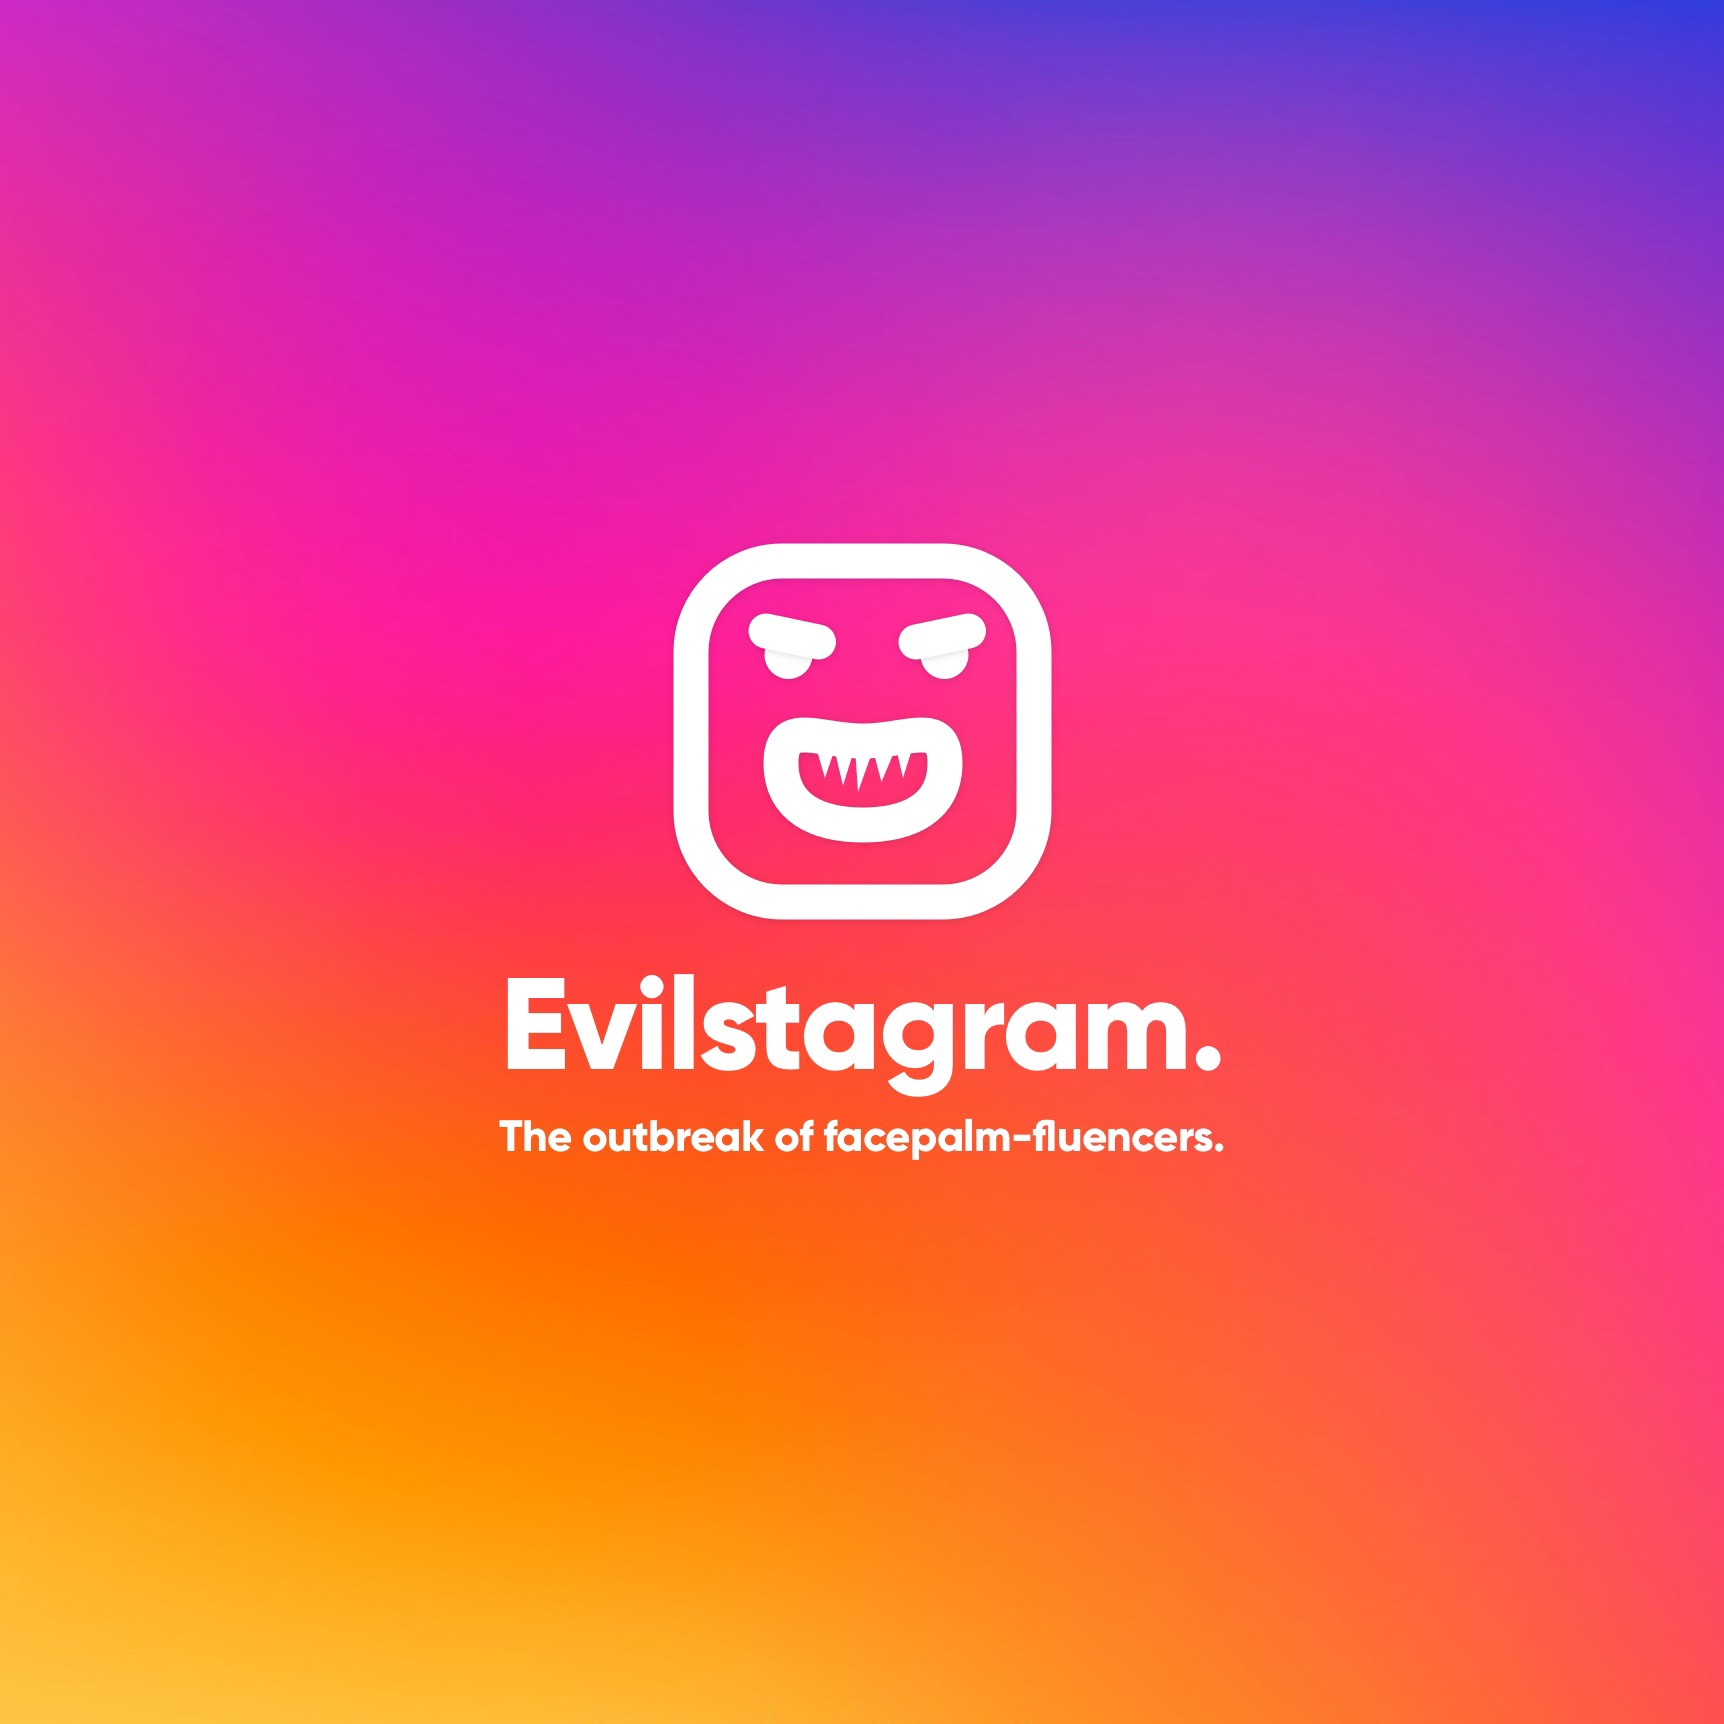 Evilstagram — instagram's bad side